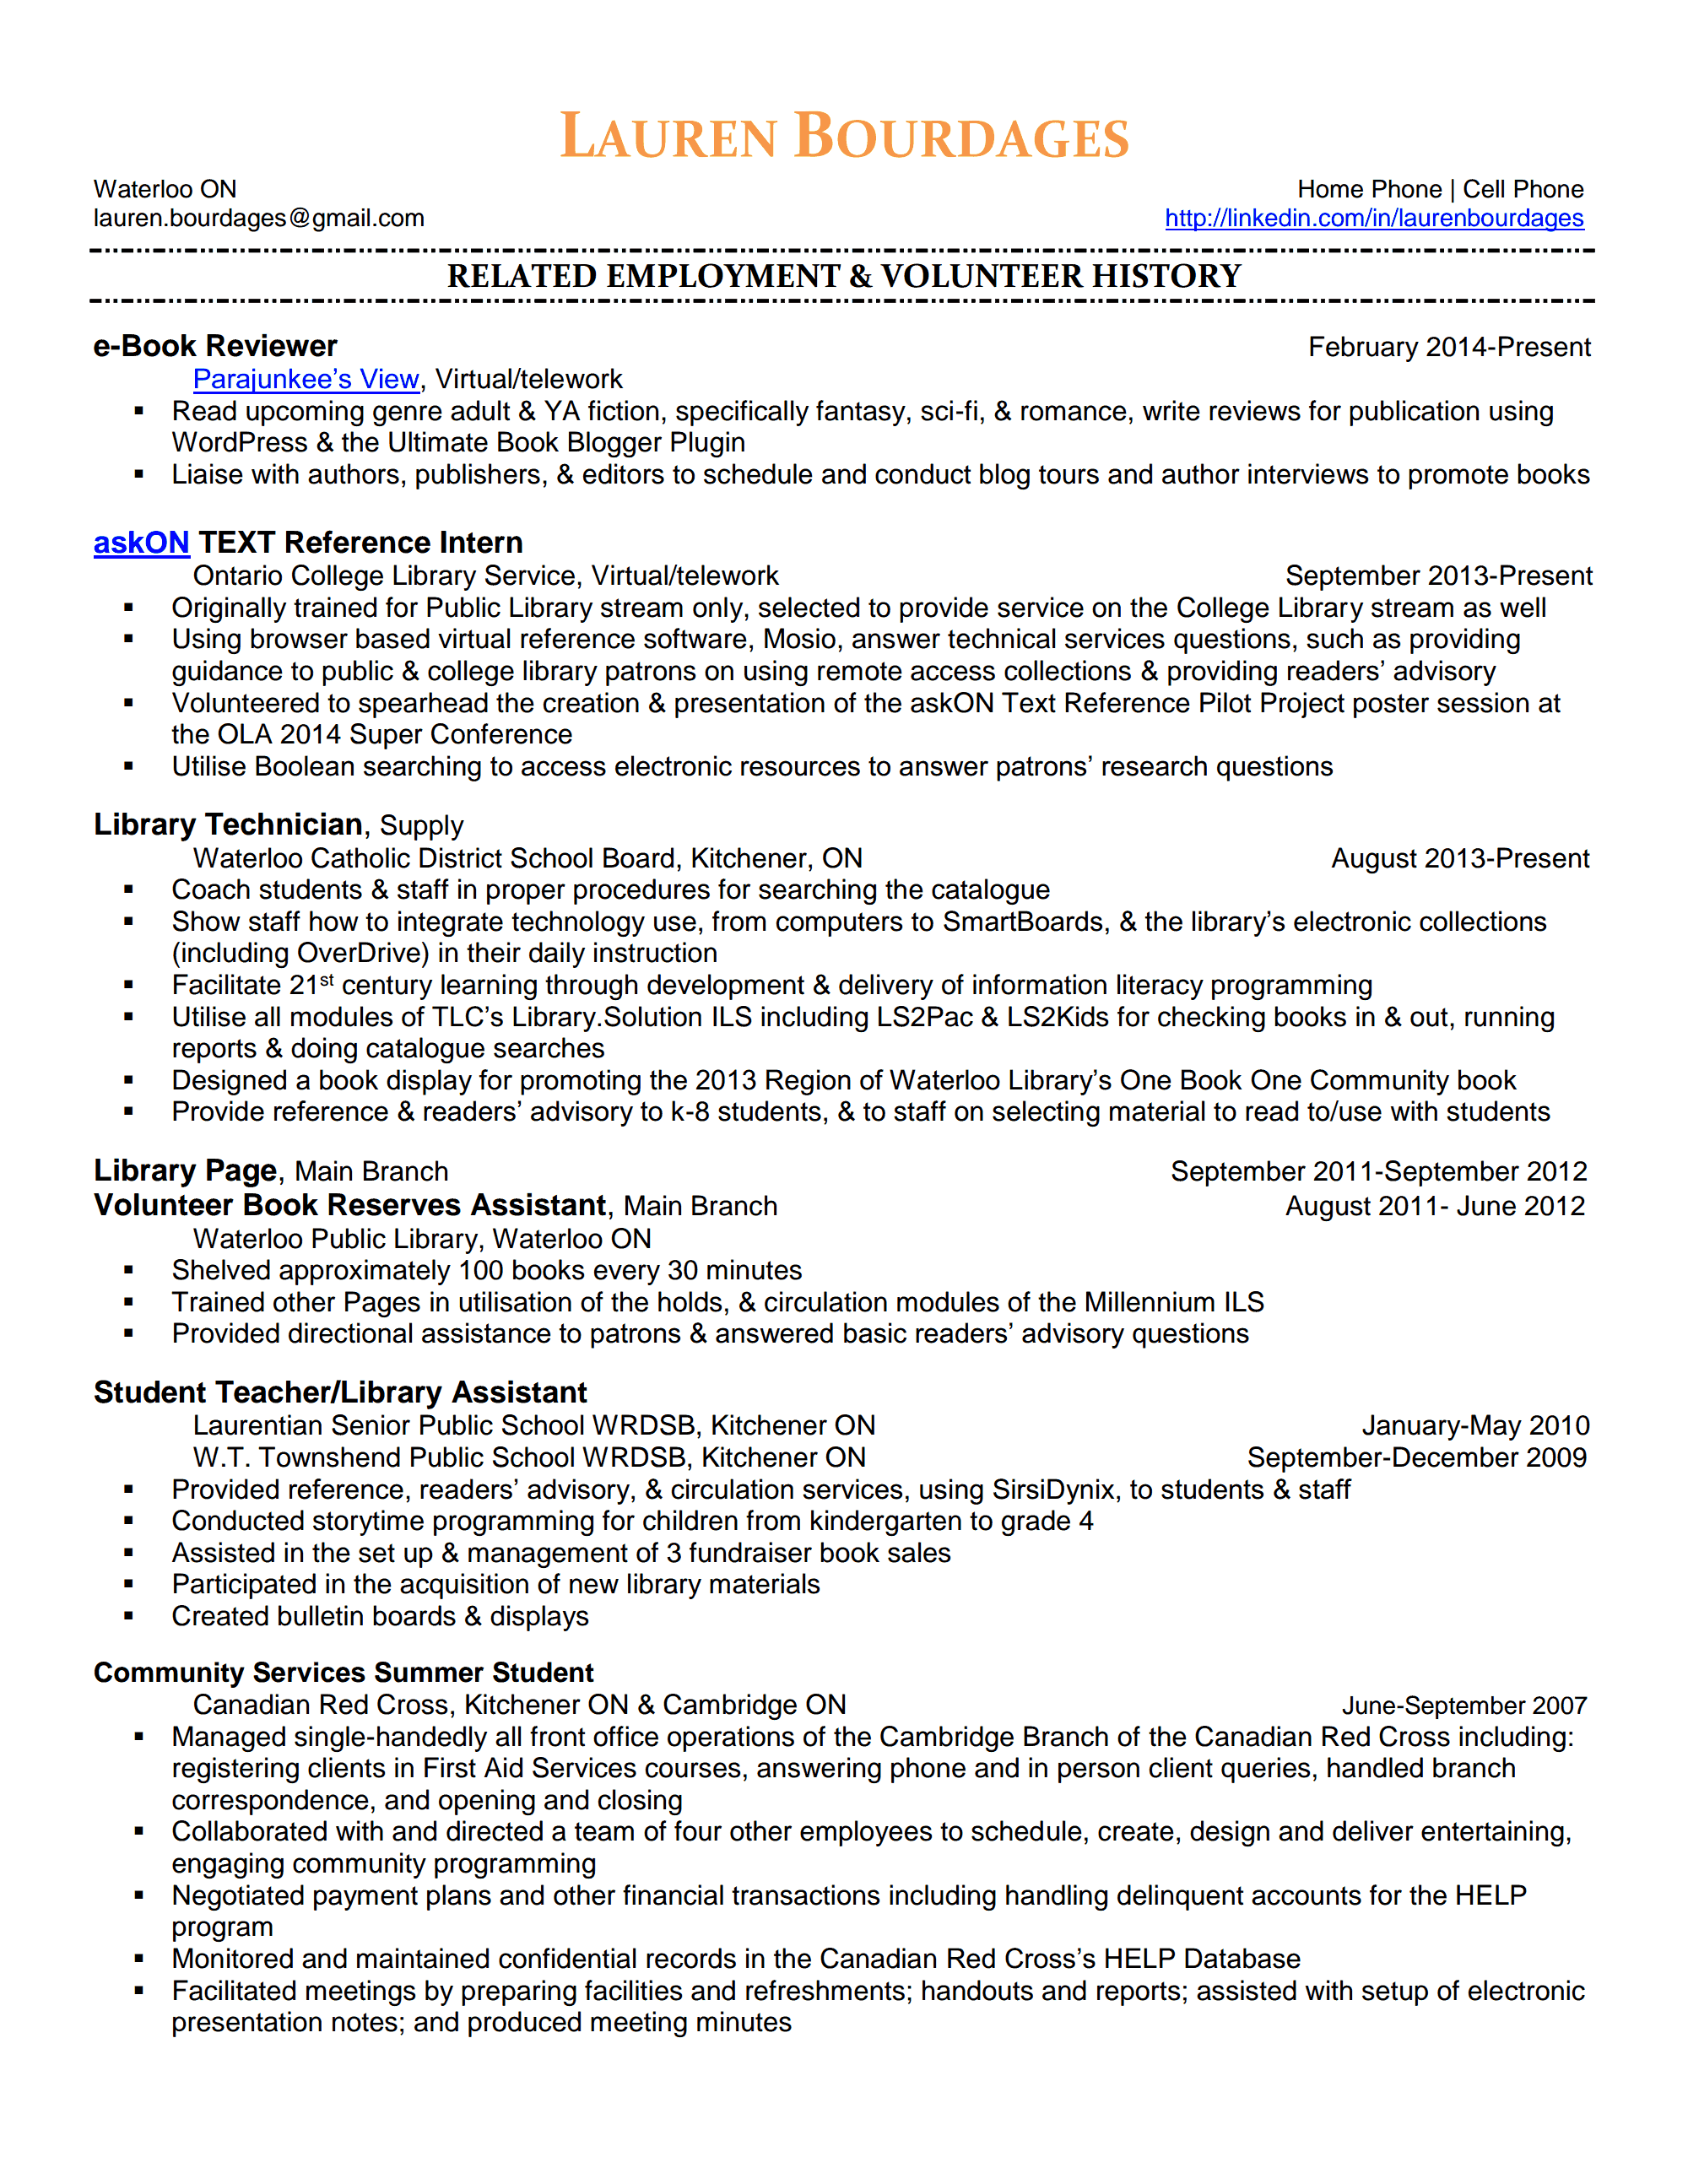 librarian resume template library assistant cv sample librarian susan ireland resumes library technician resume seangarrette colibrary